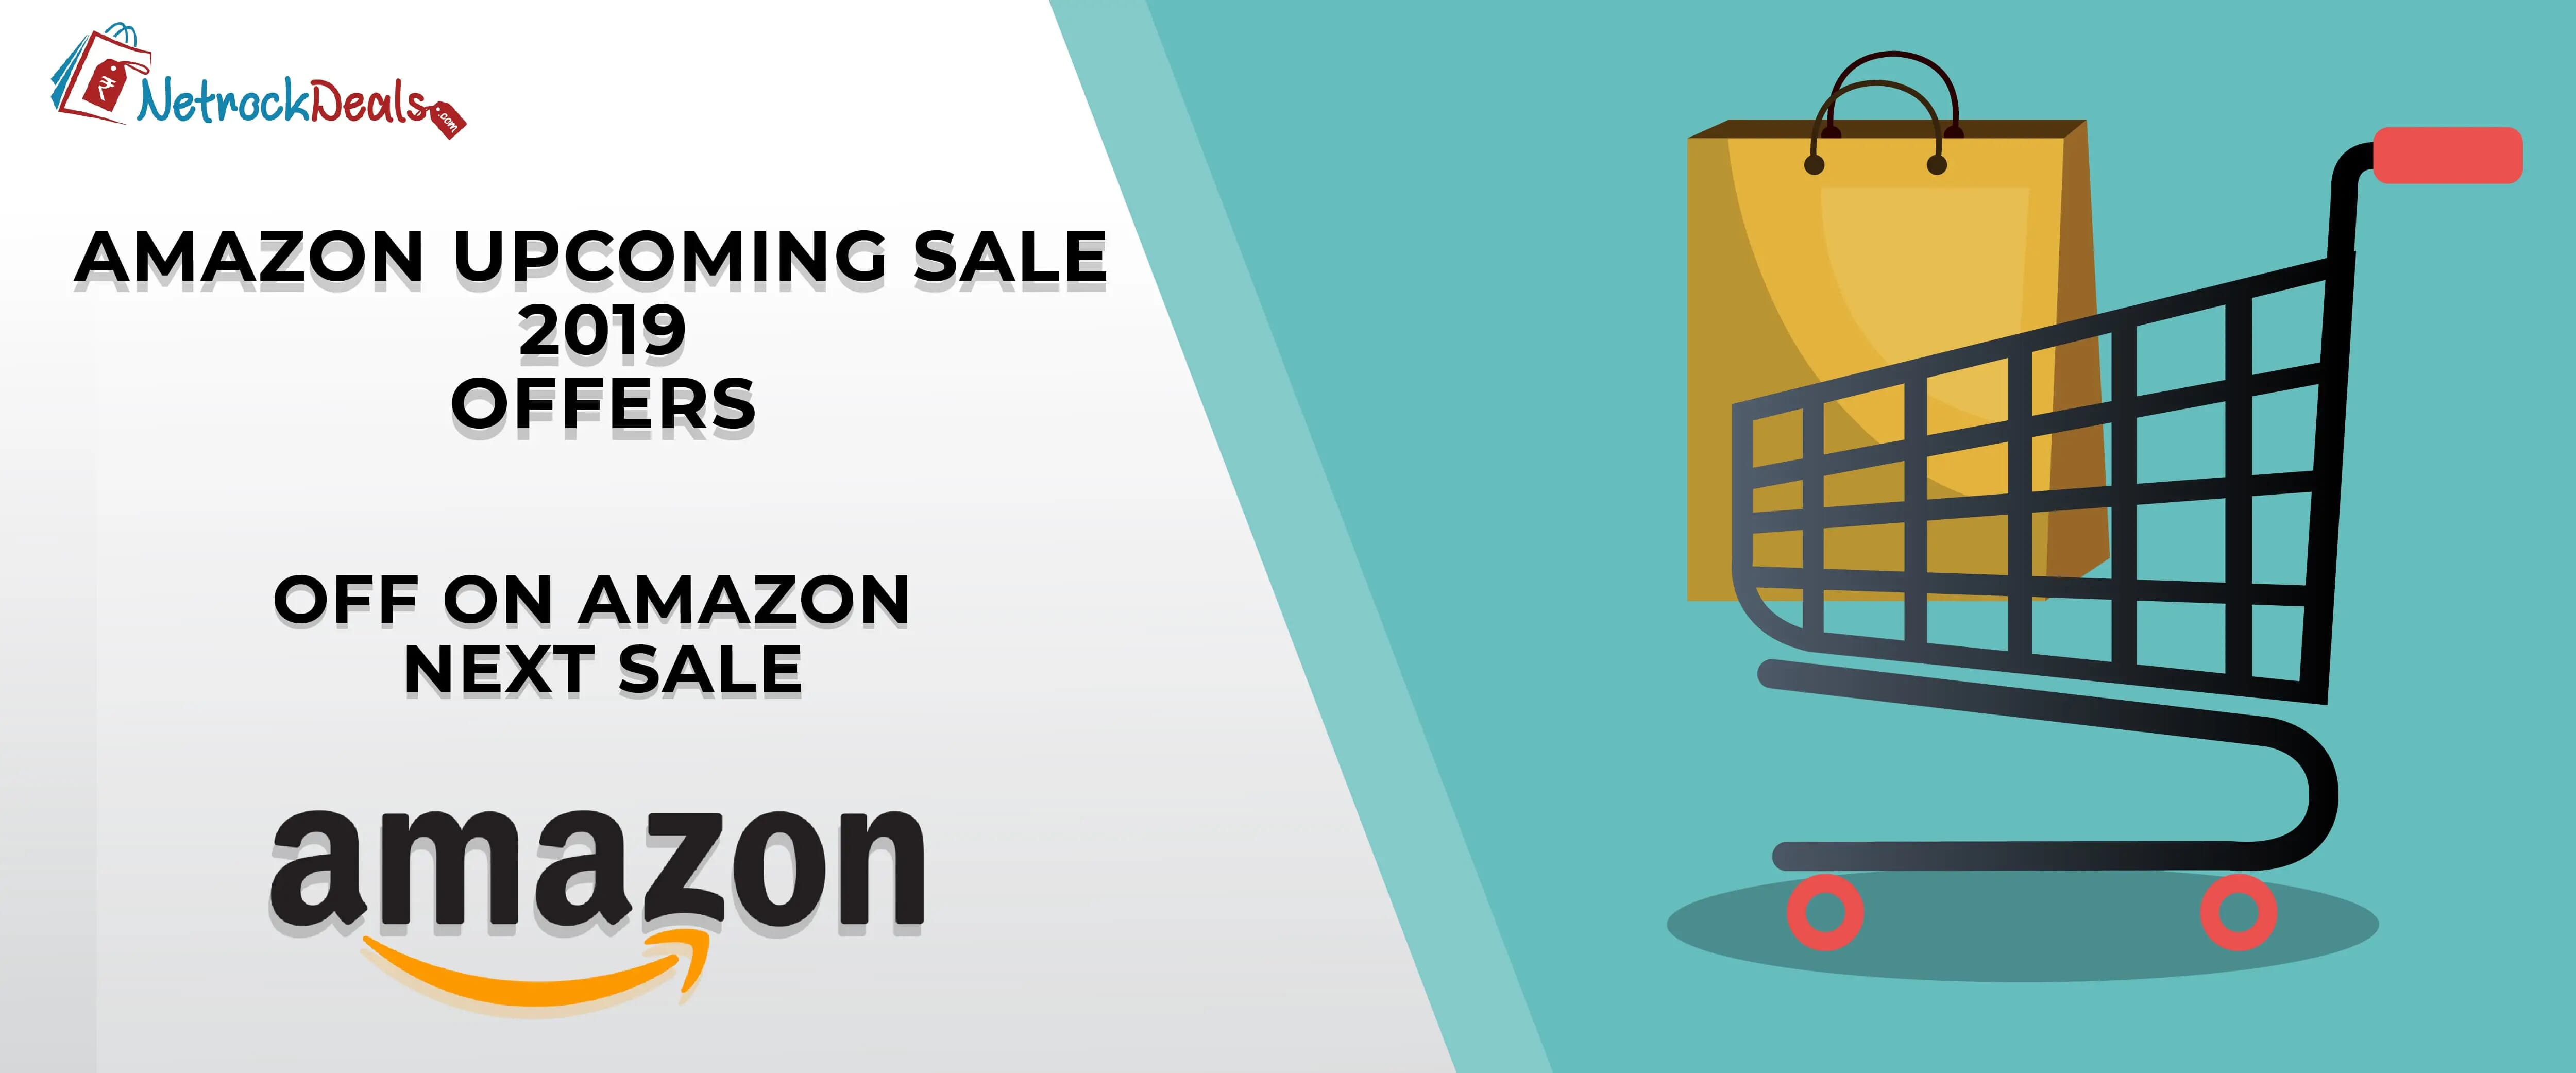 Amazon Upcomming Sale